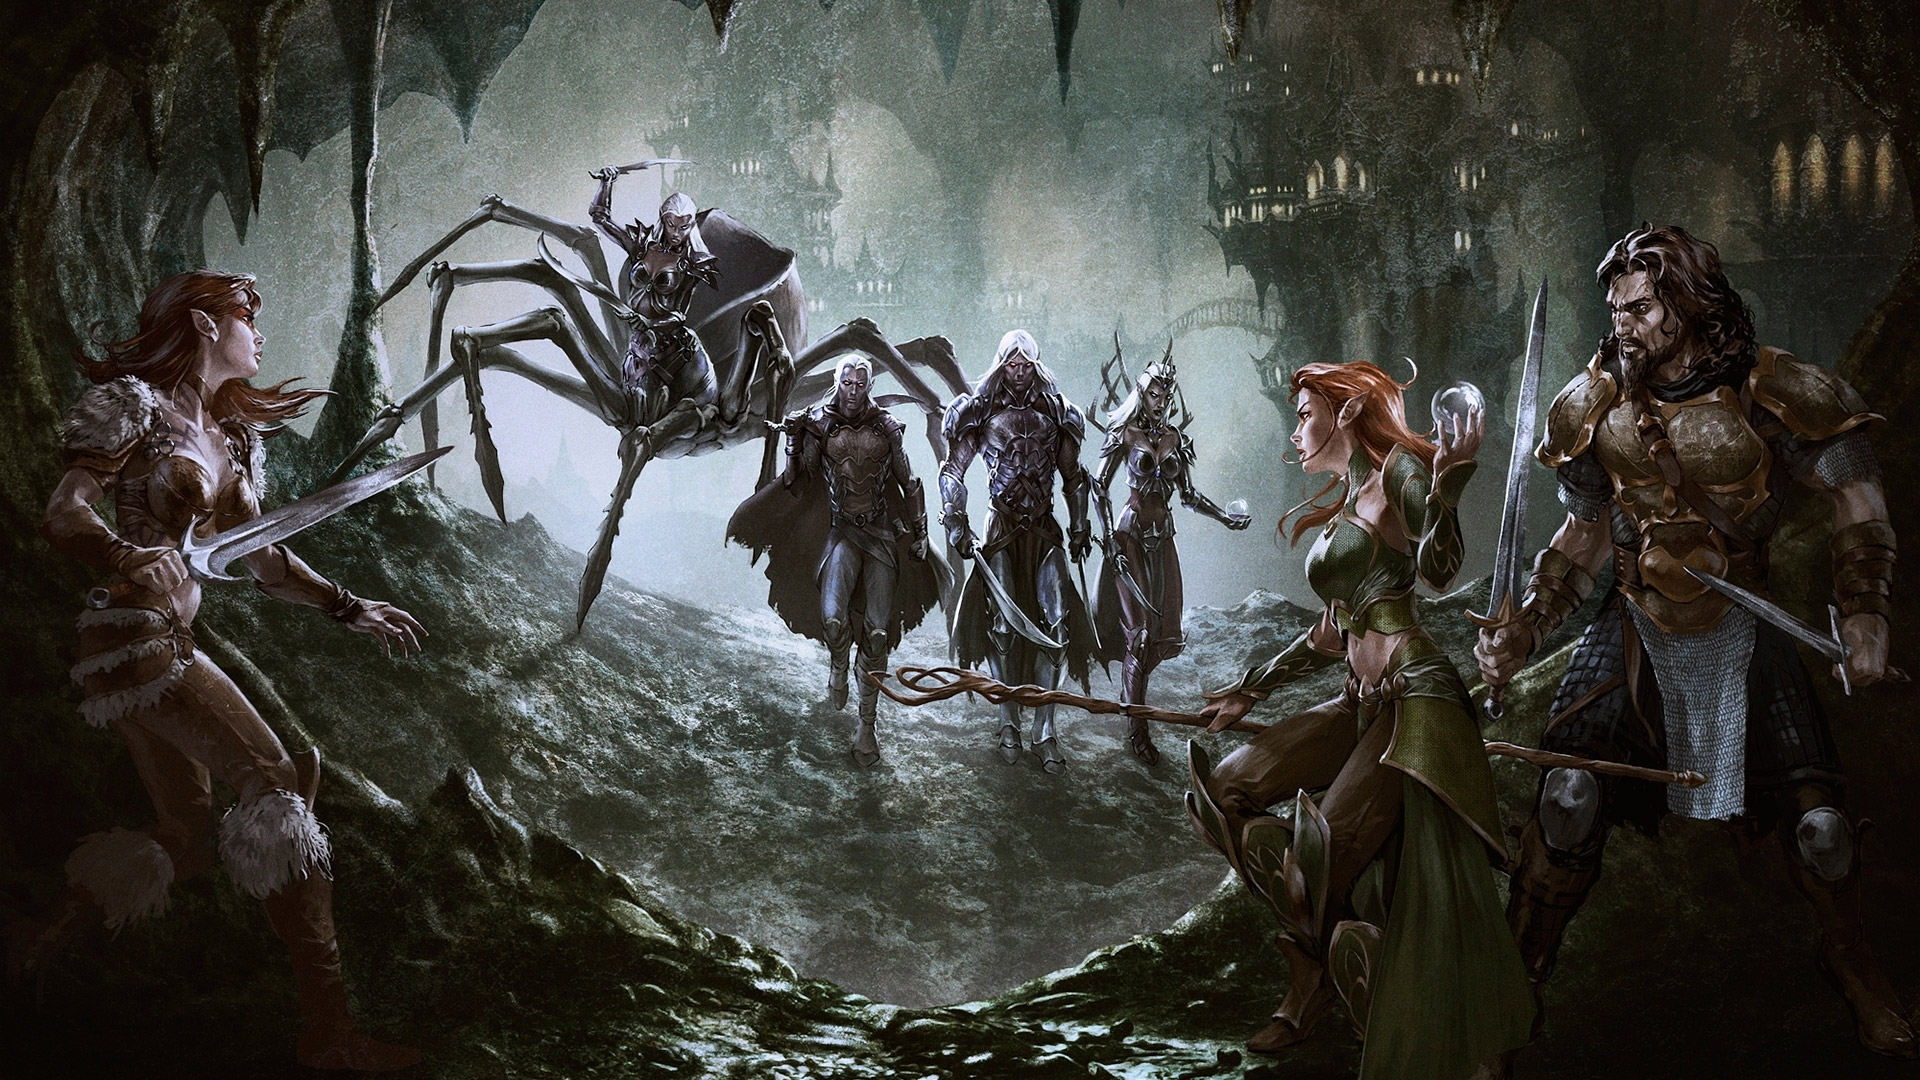 10 Best Dungeons And Dragons Hd Wallpapers FULL HD 1920x1080 For PC Desktop 2018